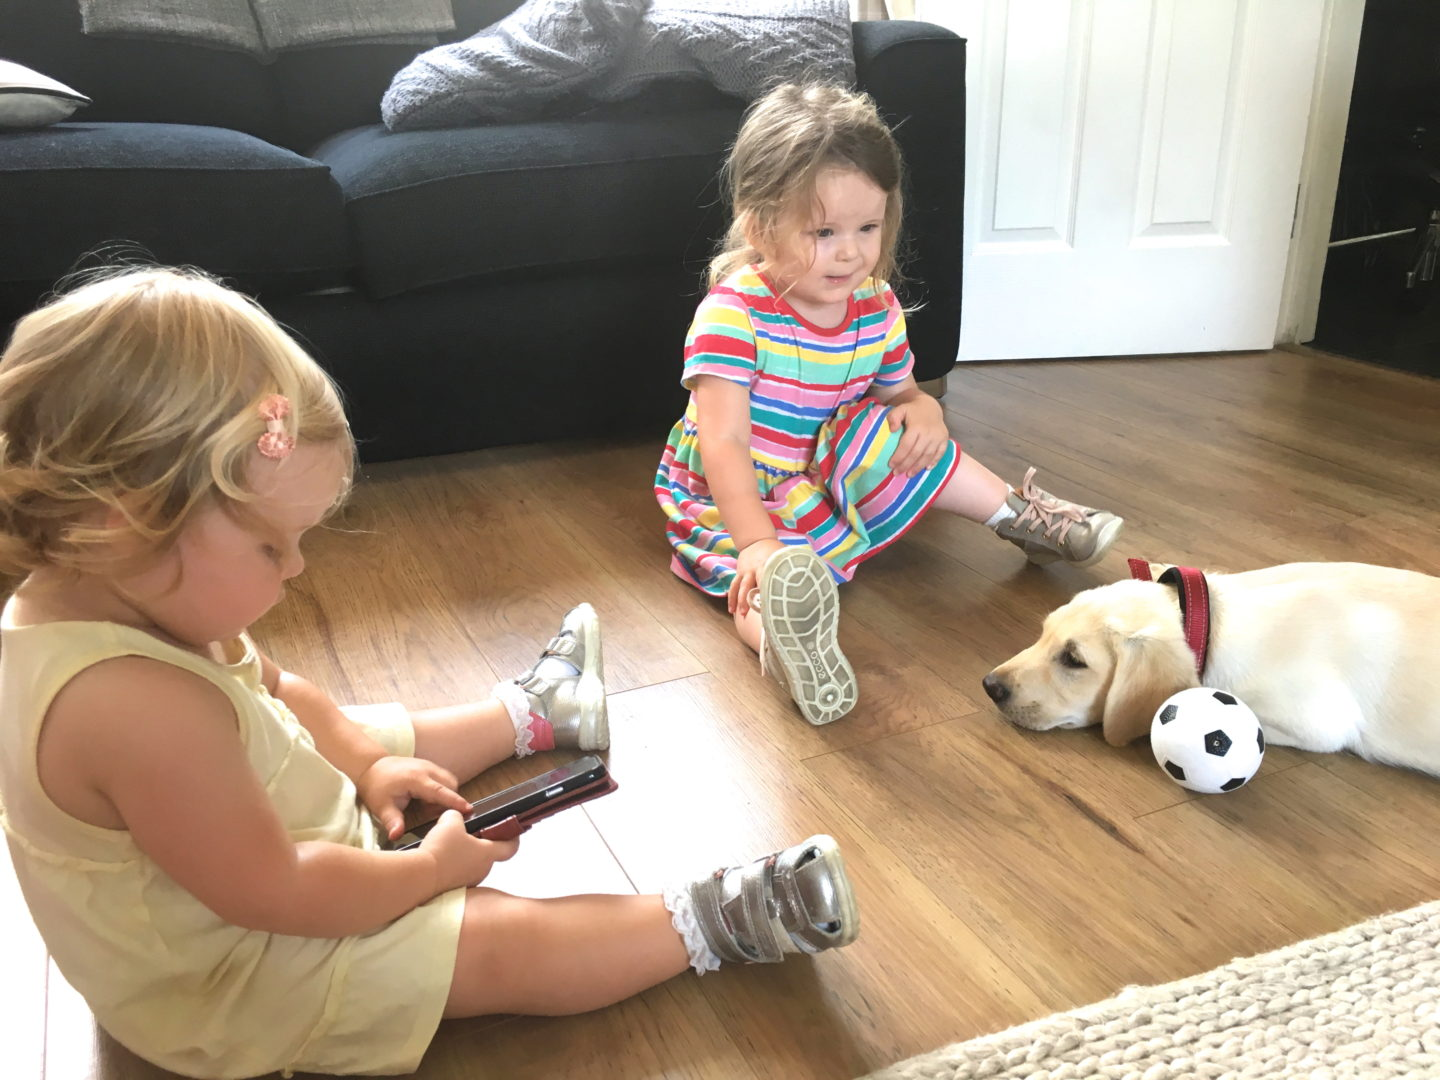 two sisters and a yellow labrador puppy sitting together on the floor